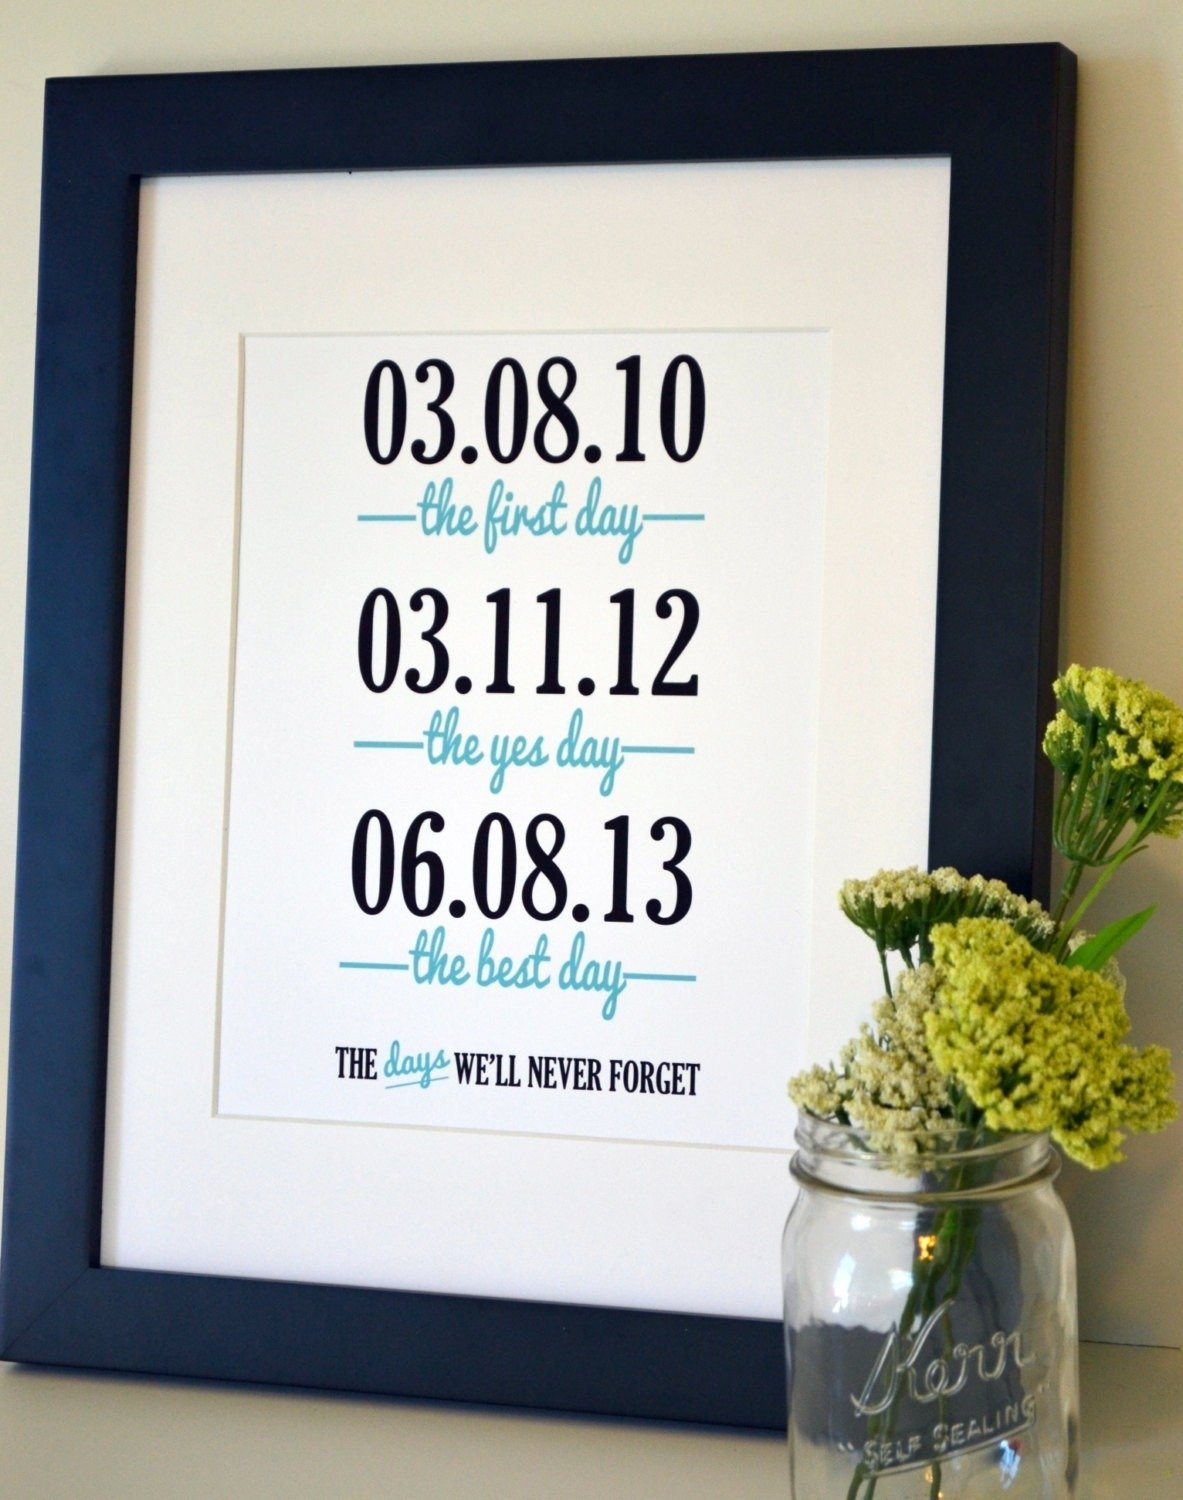 10 Elegant Anniversary Gifts Ideas For Him astonishing wedding anniversary gifts for him gift ideas both 6 5 2020